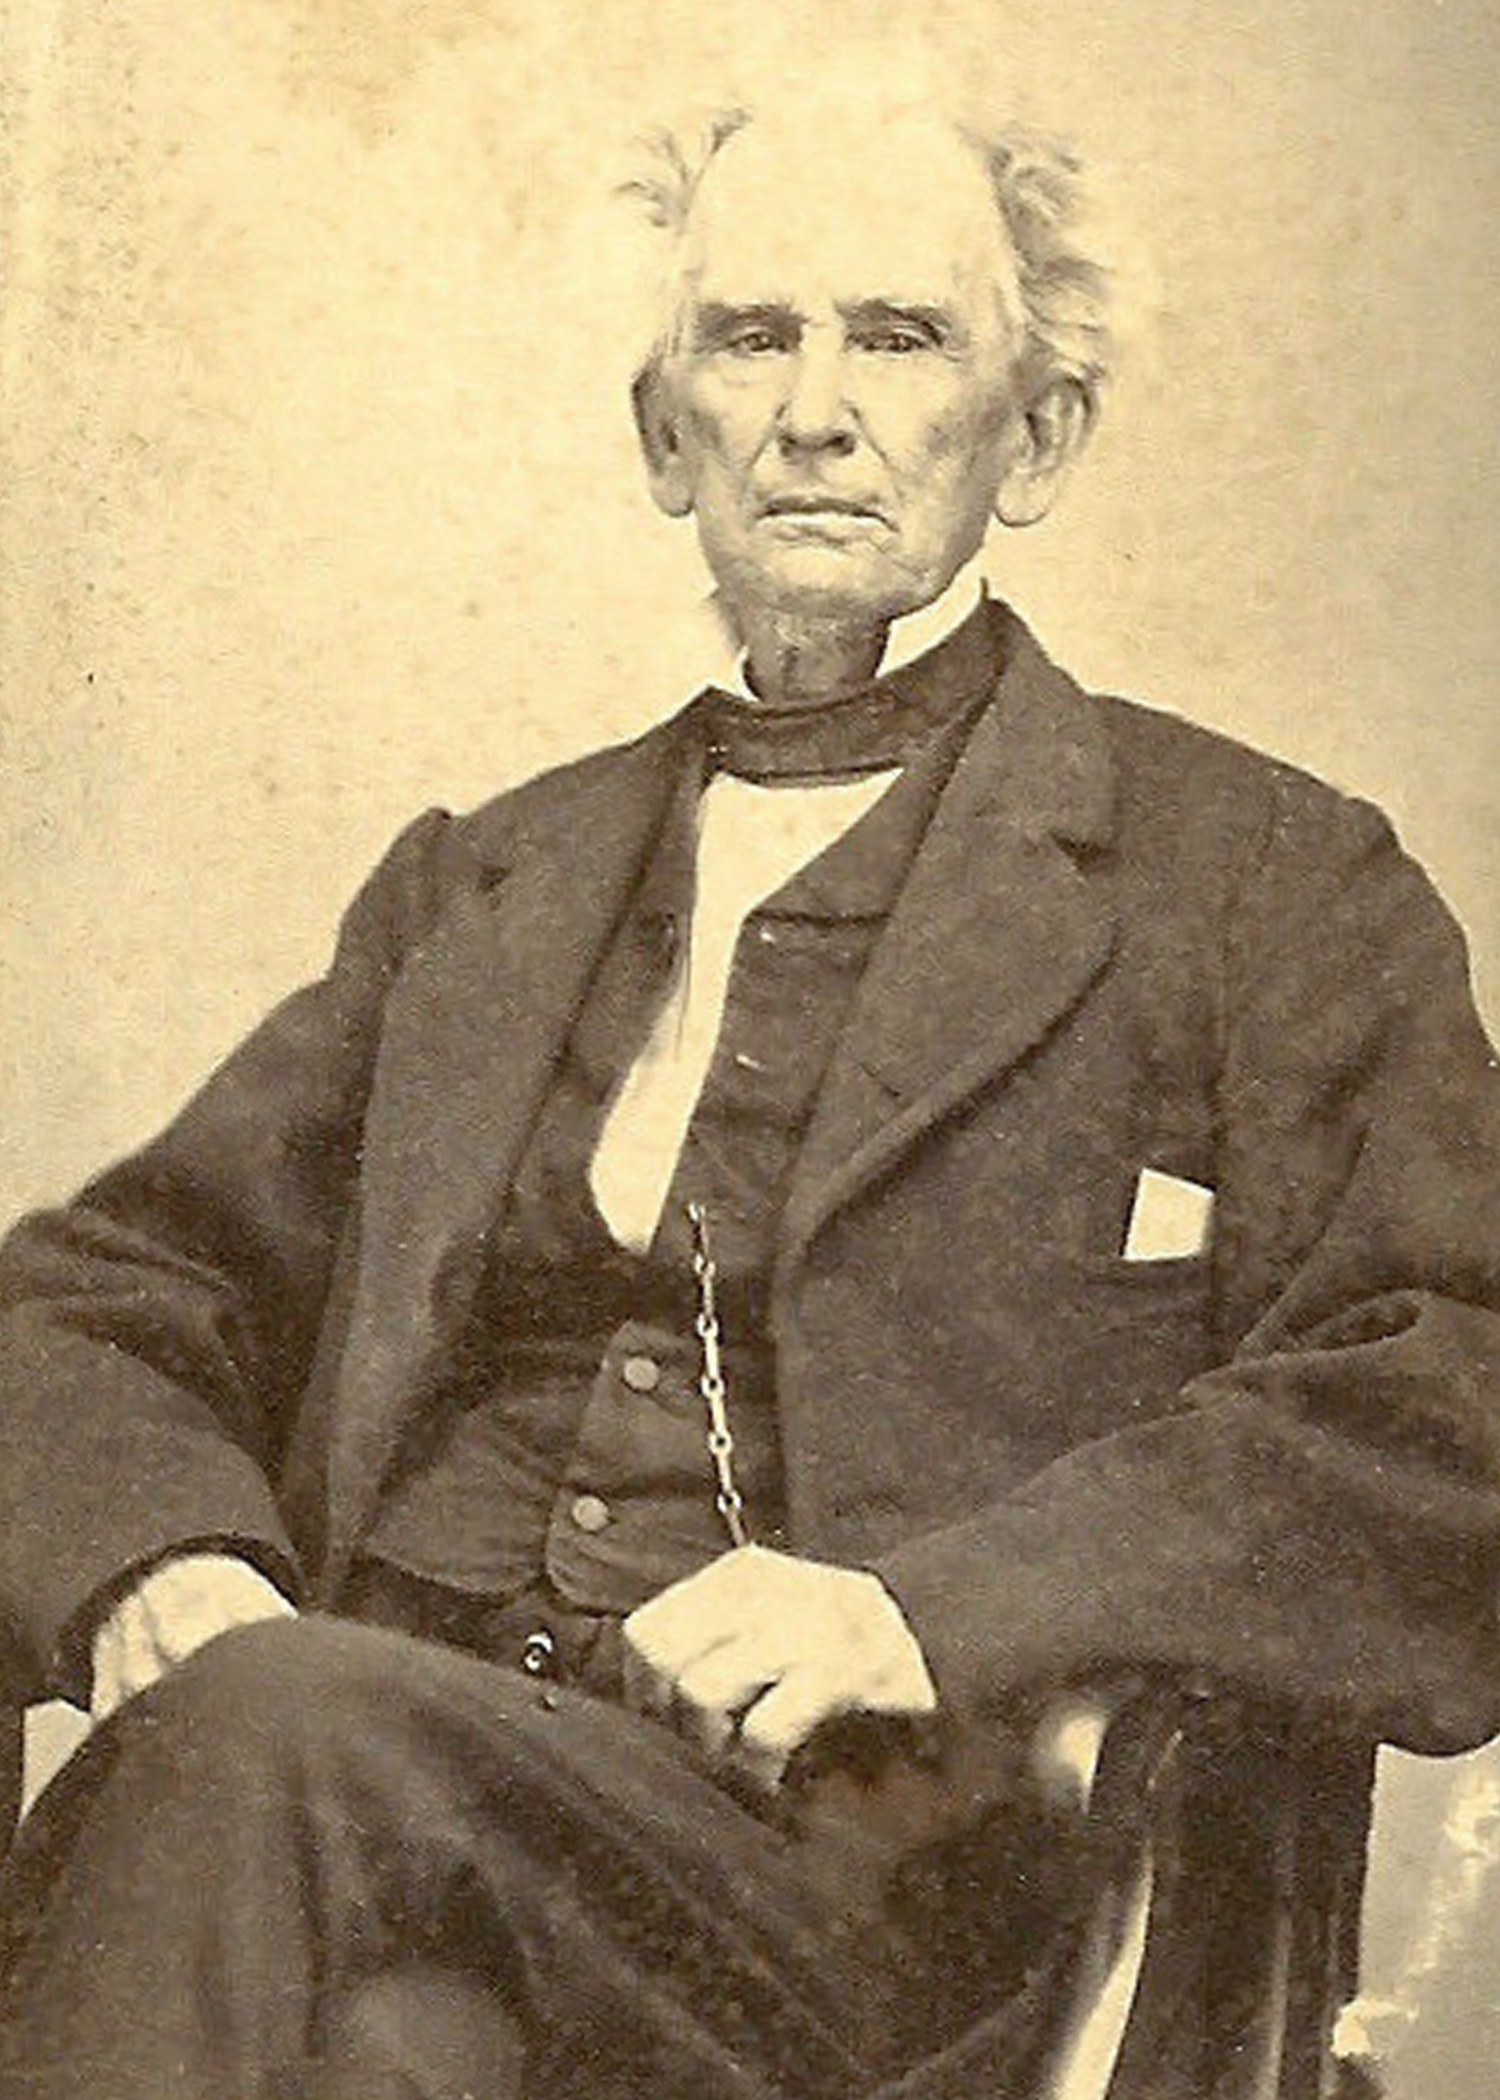 Rev. Dr. Lovick Pierce is considered the father of Methodism in Georgia.